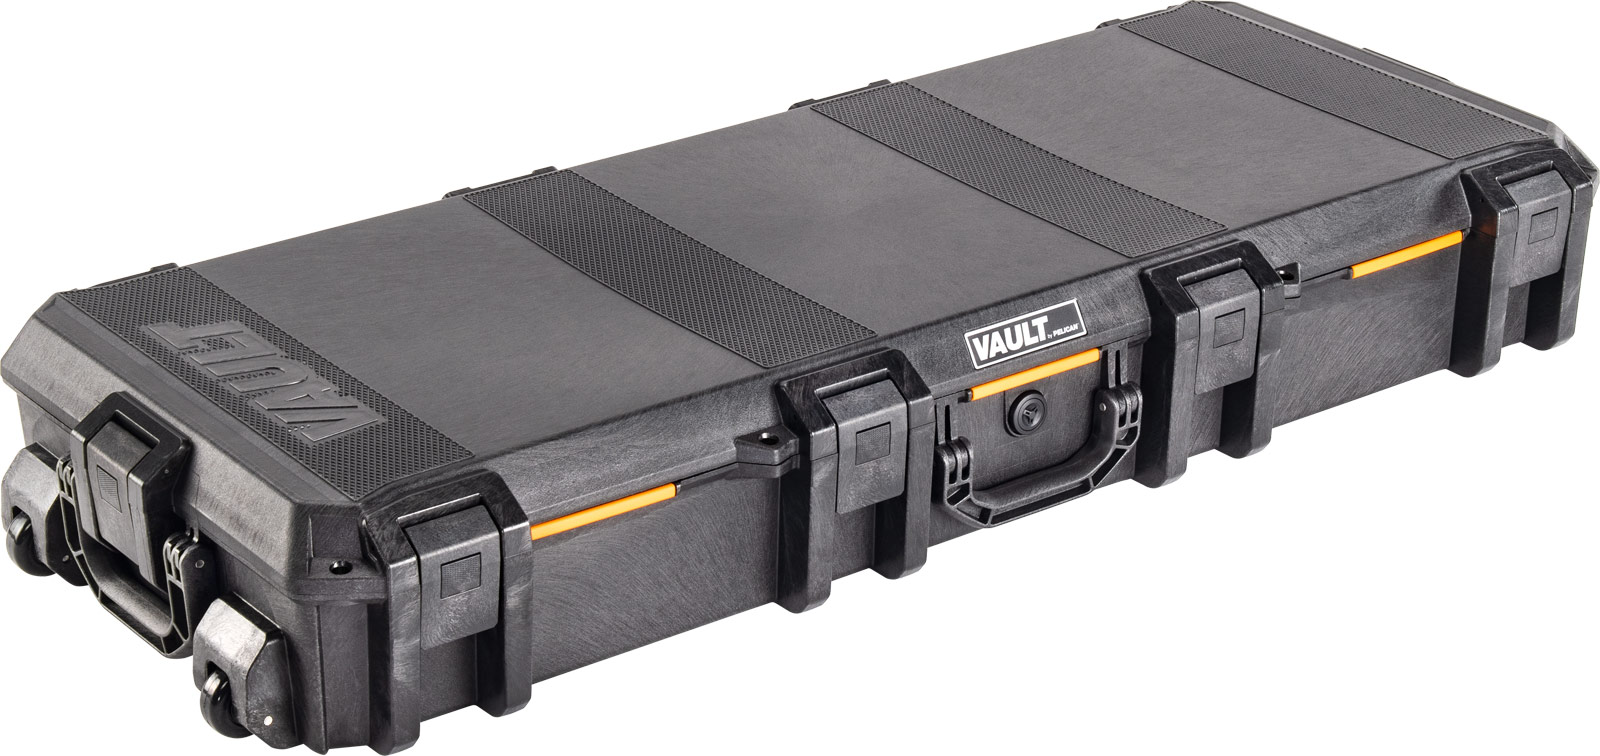 buy pelican vault v730 shop gun case